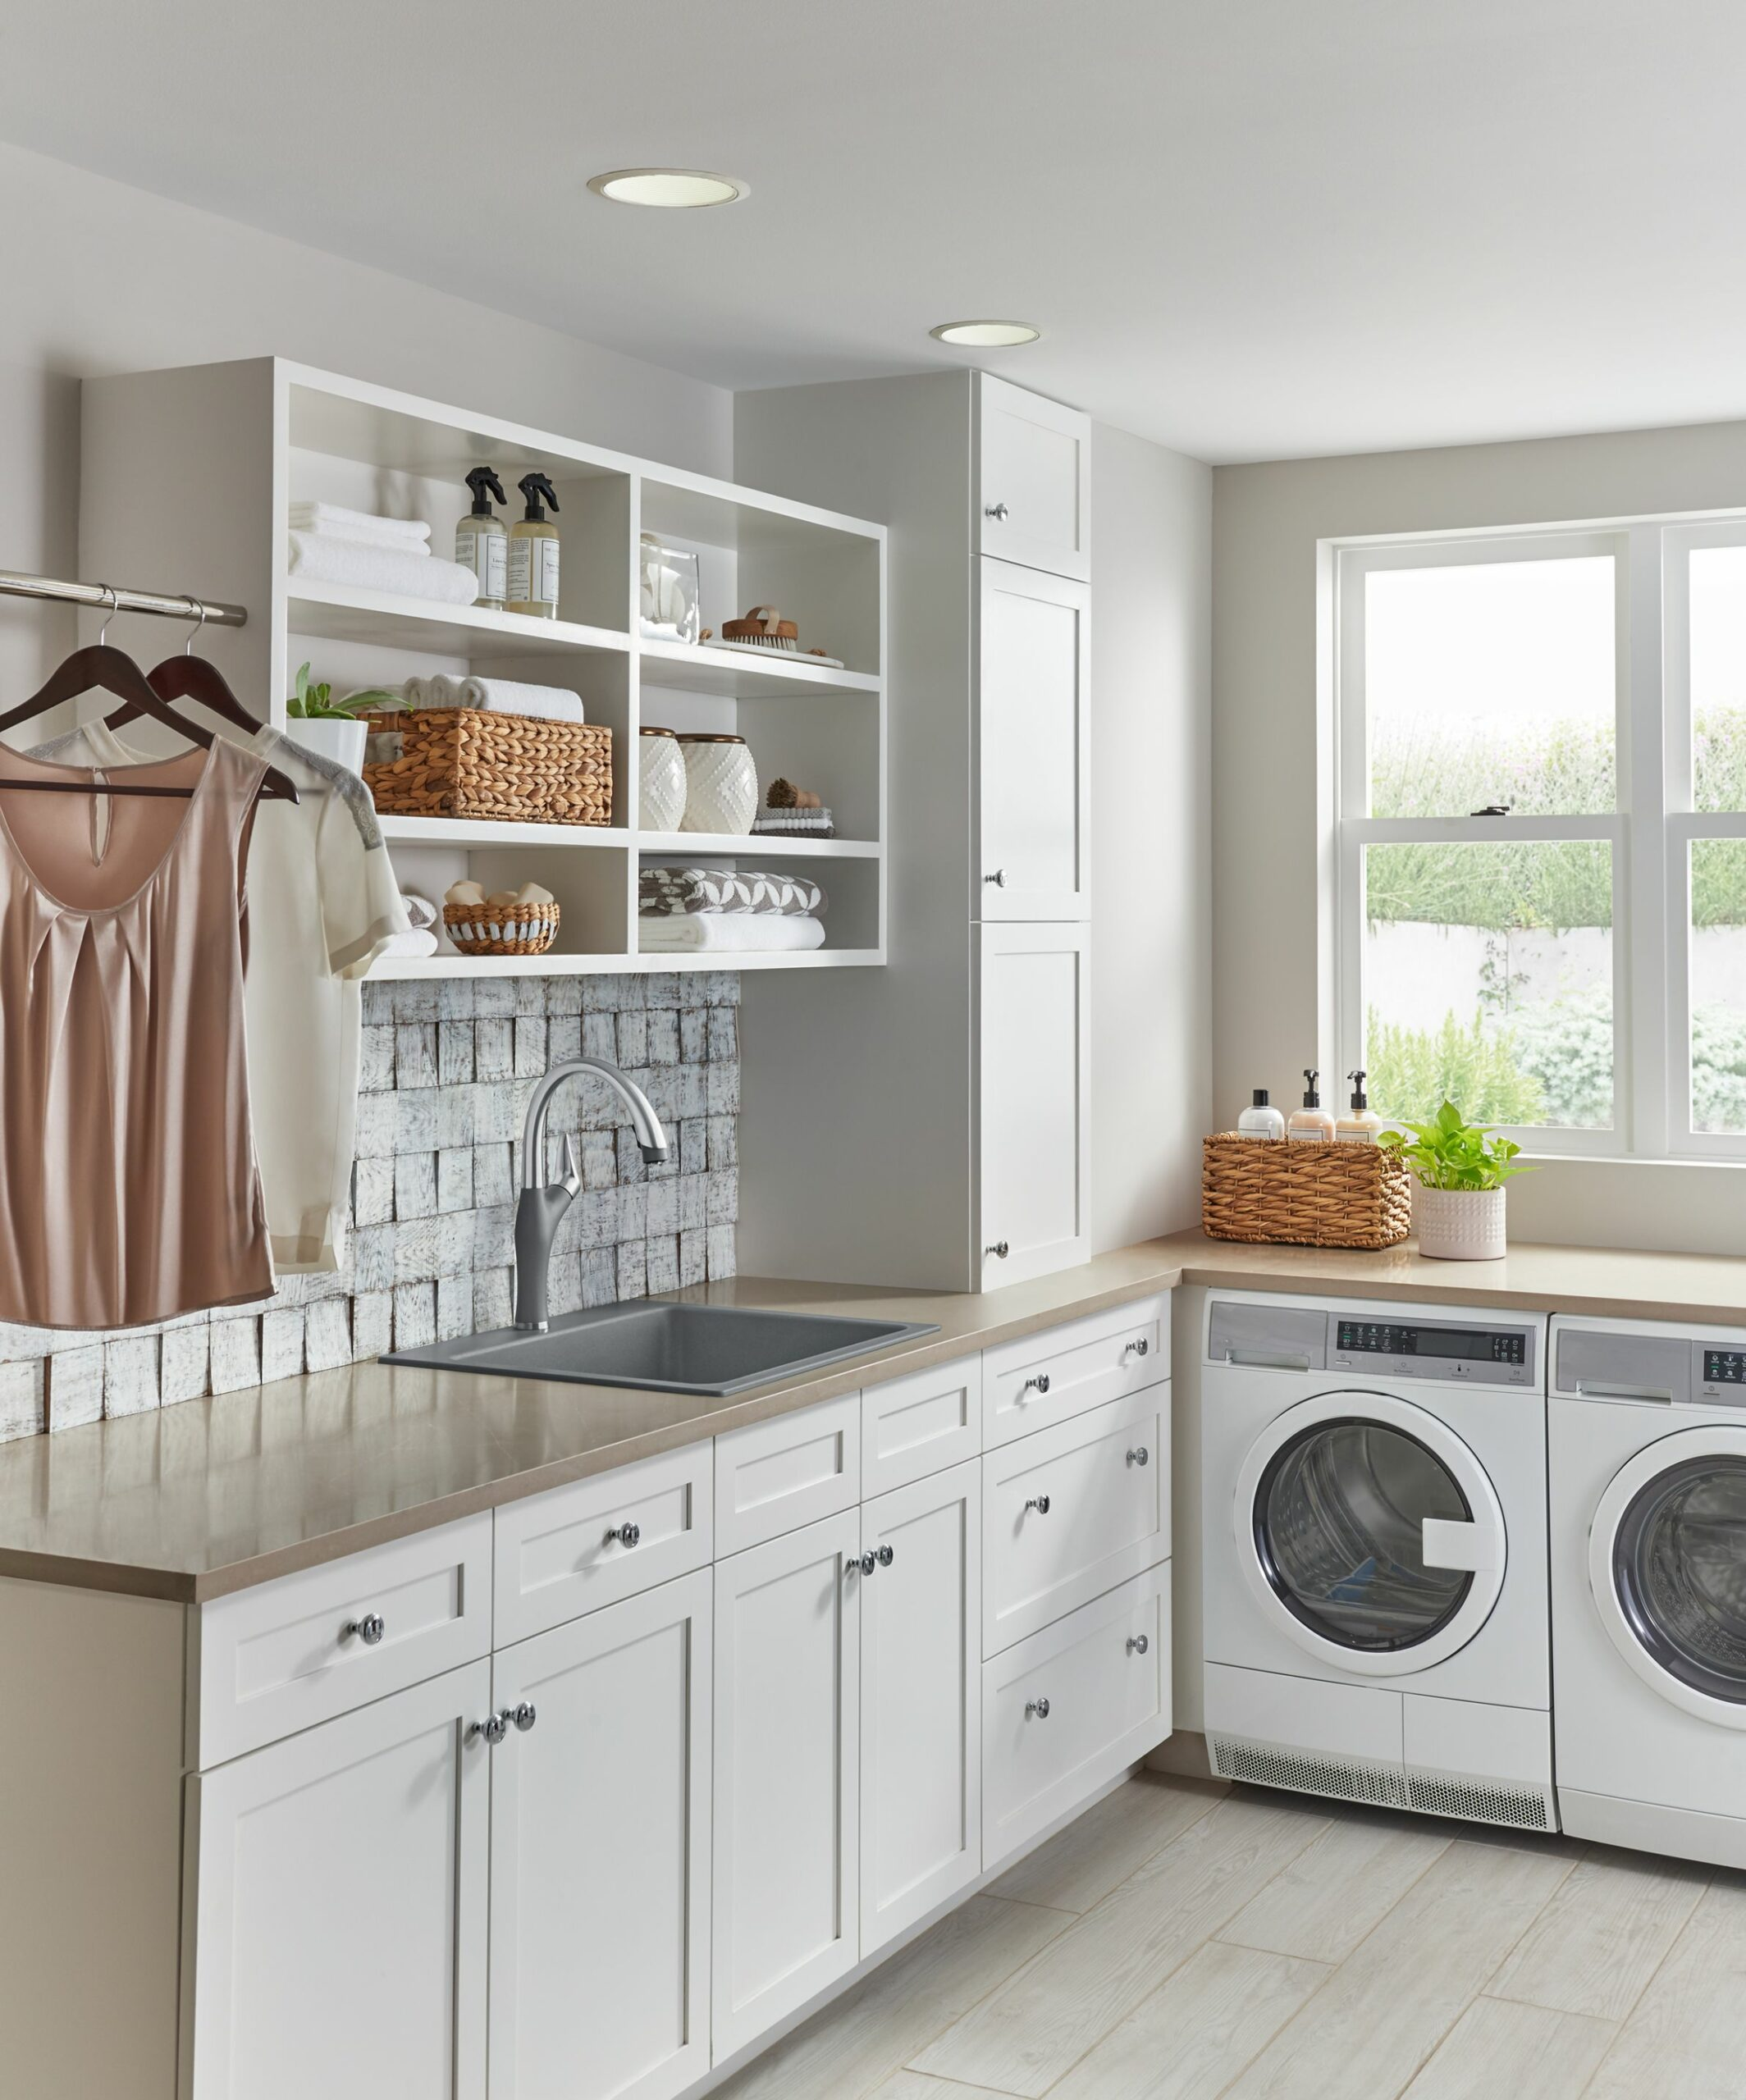 On the surface: fabricating for the laundry room - Blanco by Design - laundry room countertop ideas